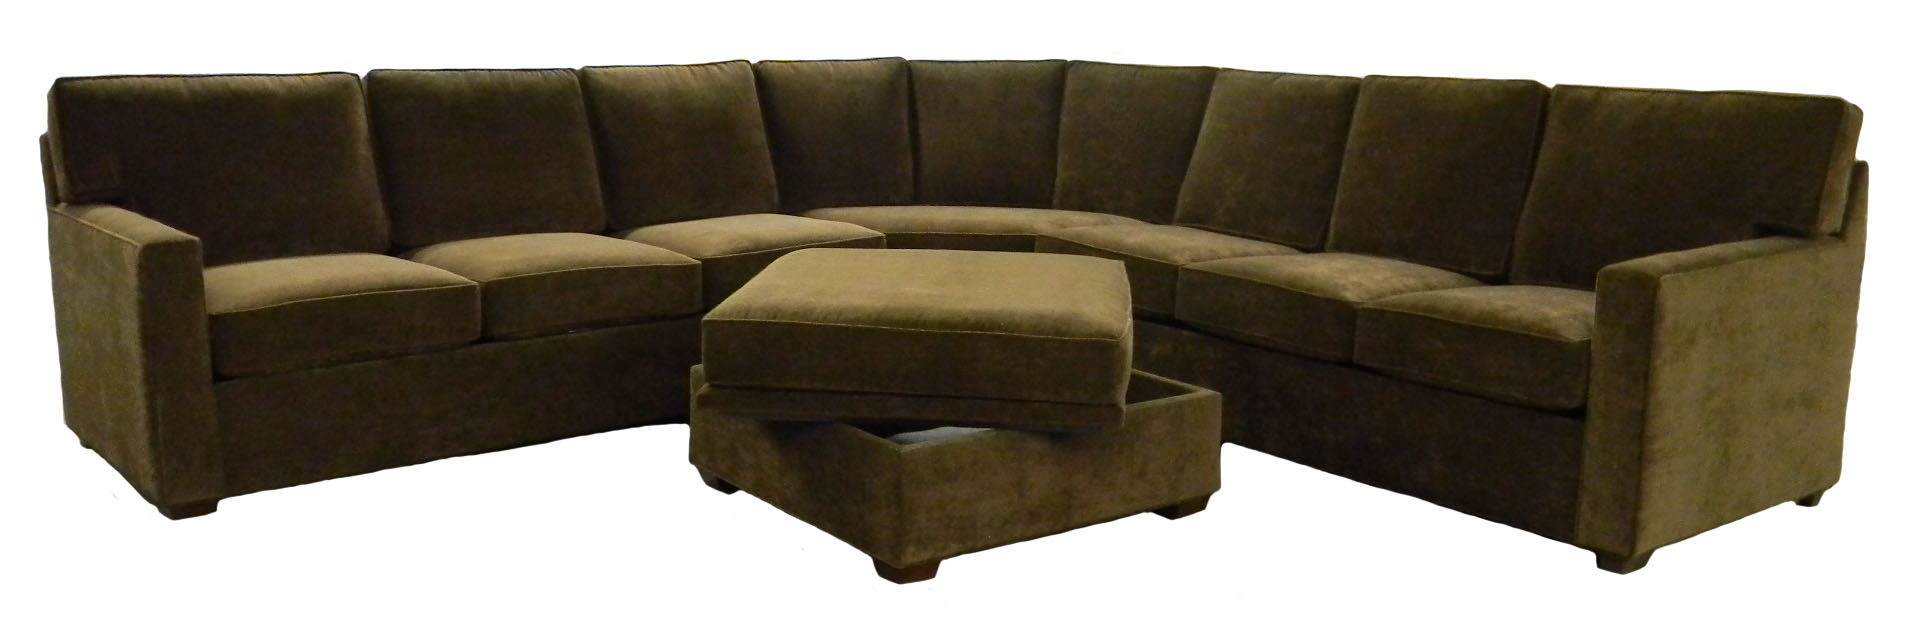 Olive Green Sectional Sofa – Hereo Sofa